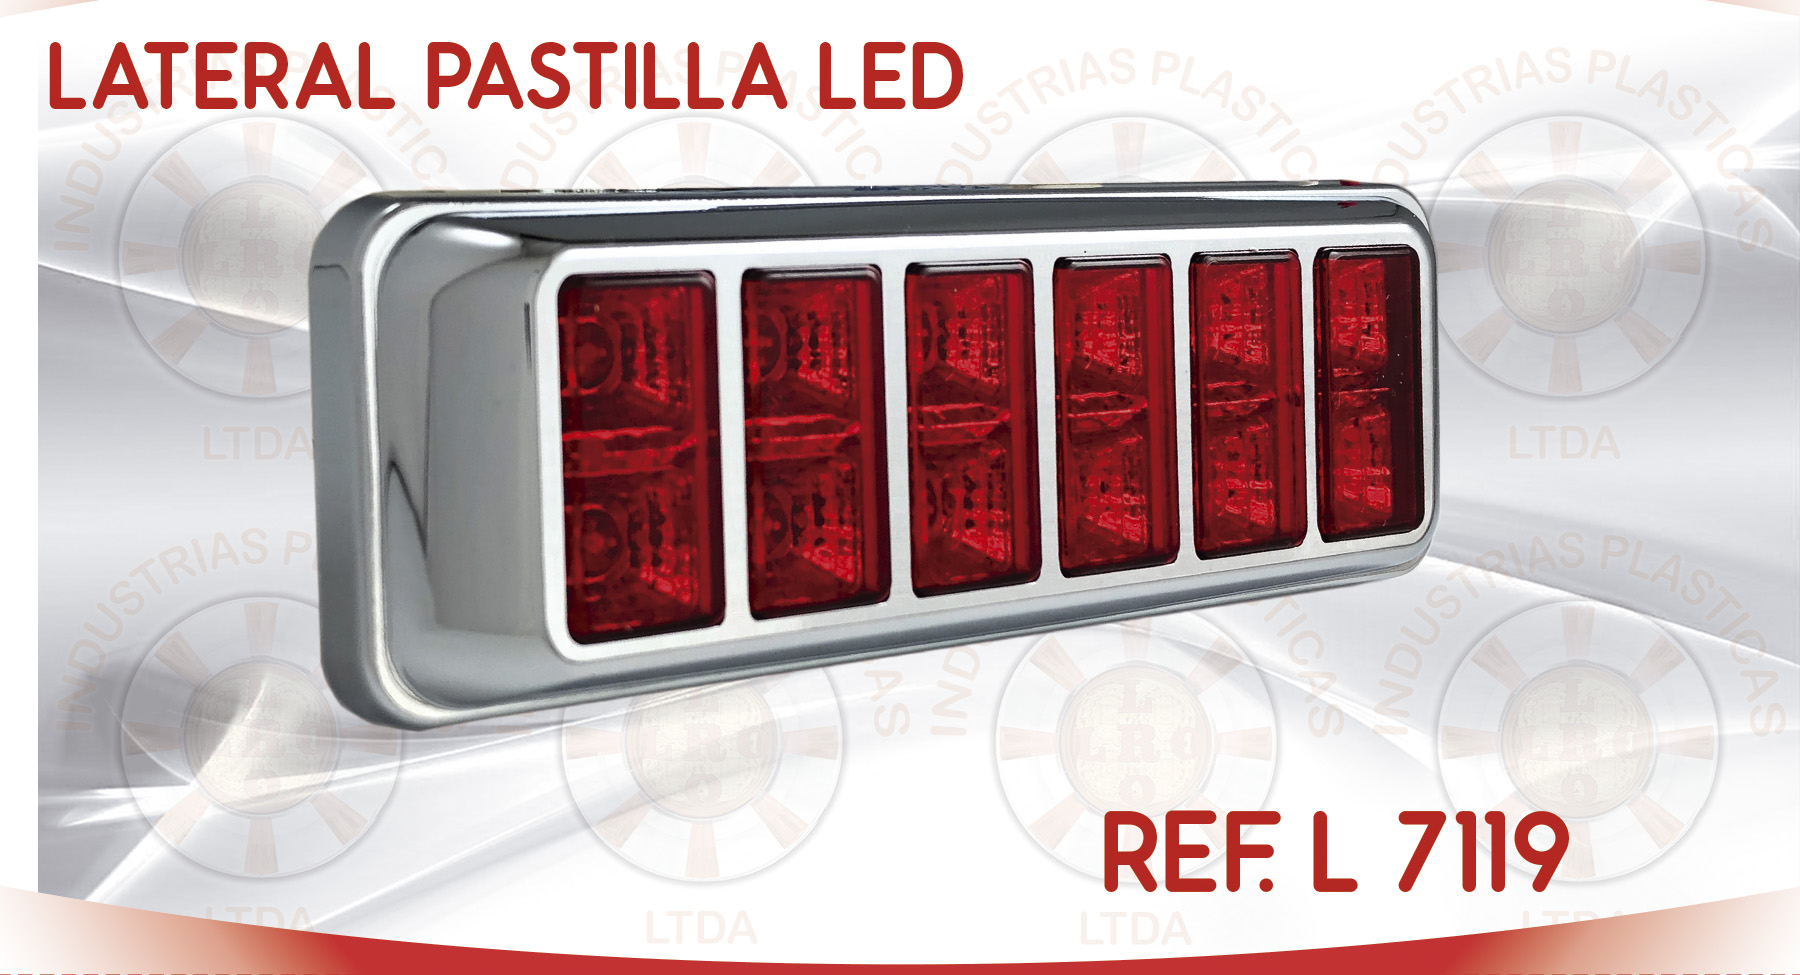 L 7119 LATERAL PASTILLA LED